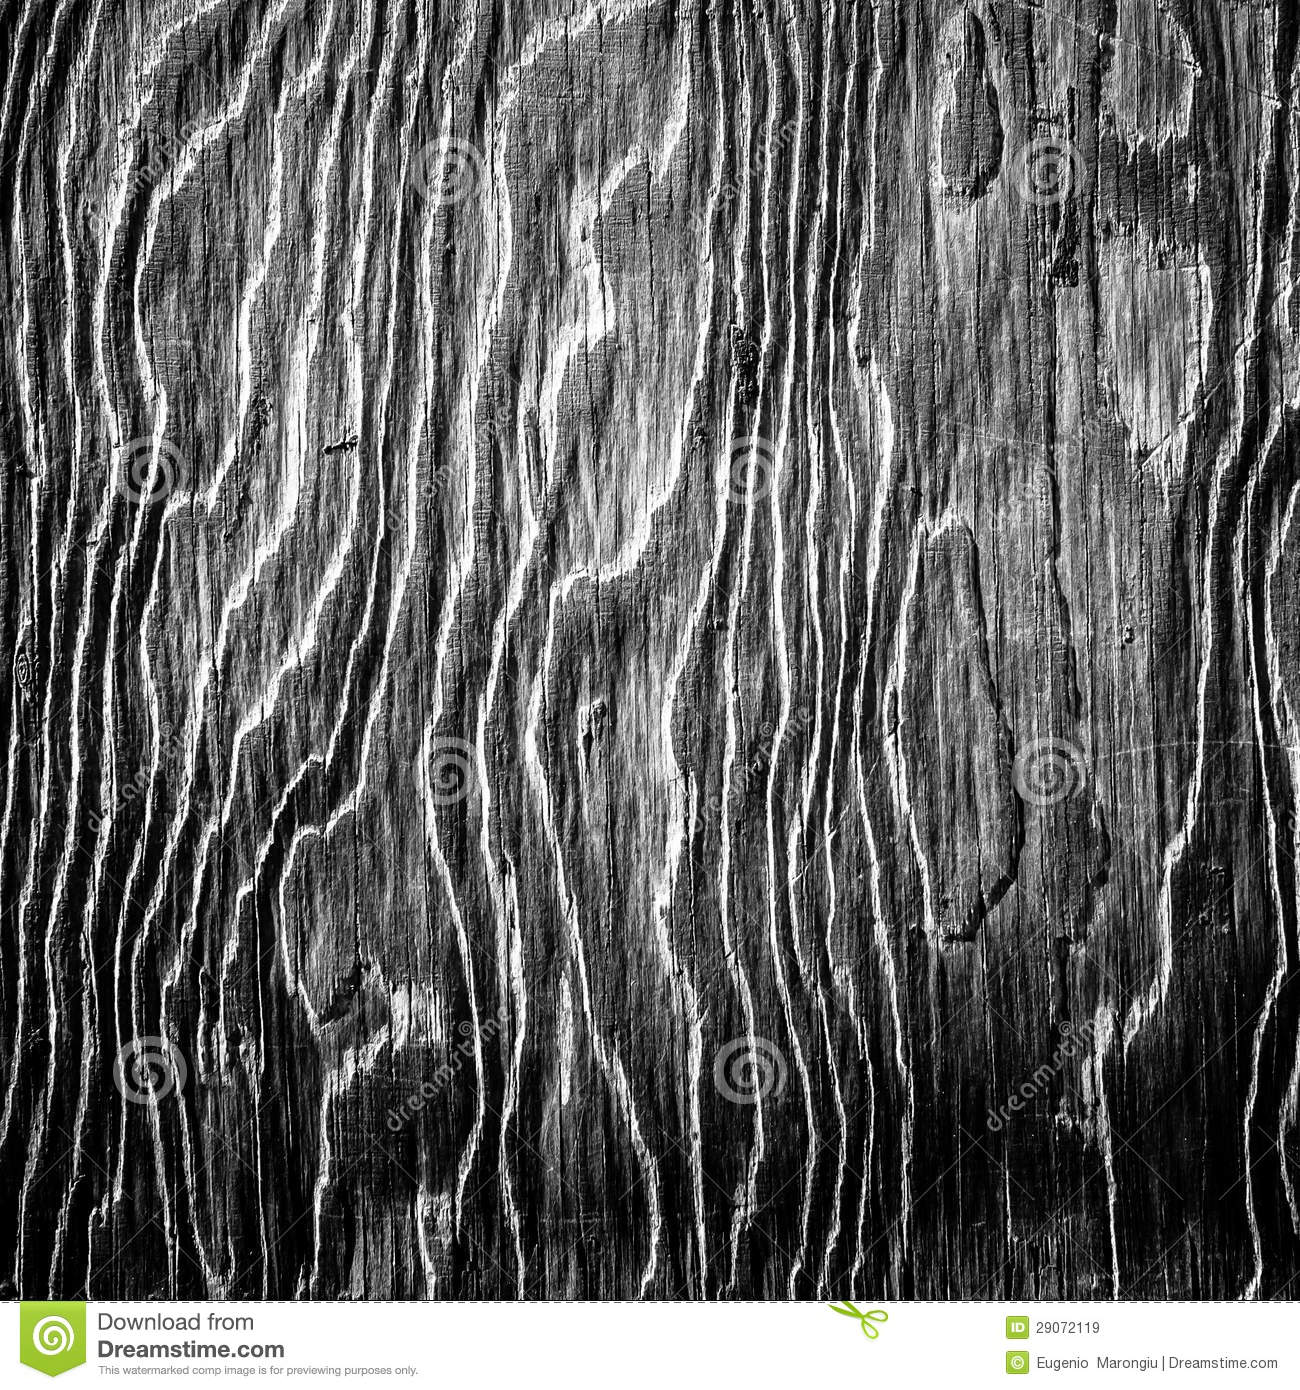 black and white artistic wood texture royalty free stock images image 29072119. Black Bedroom Furniture Sets. Home Design Ideas